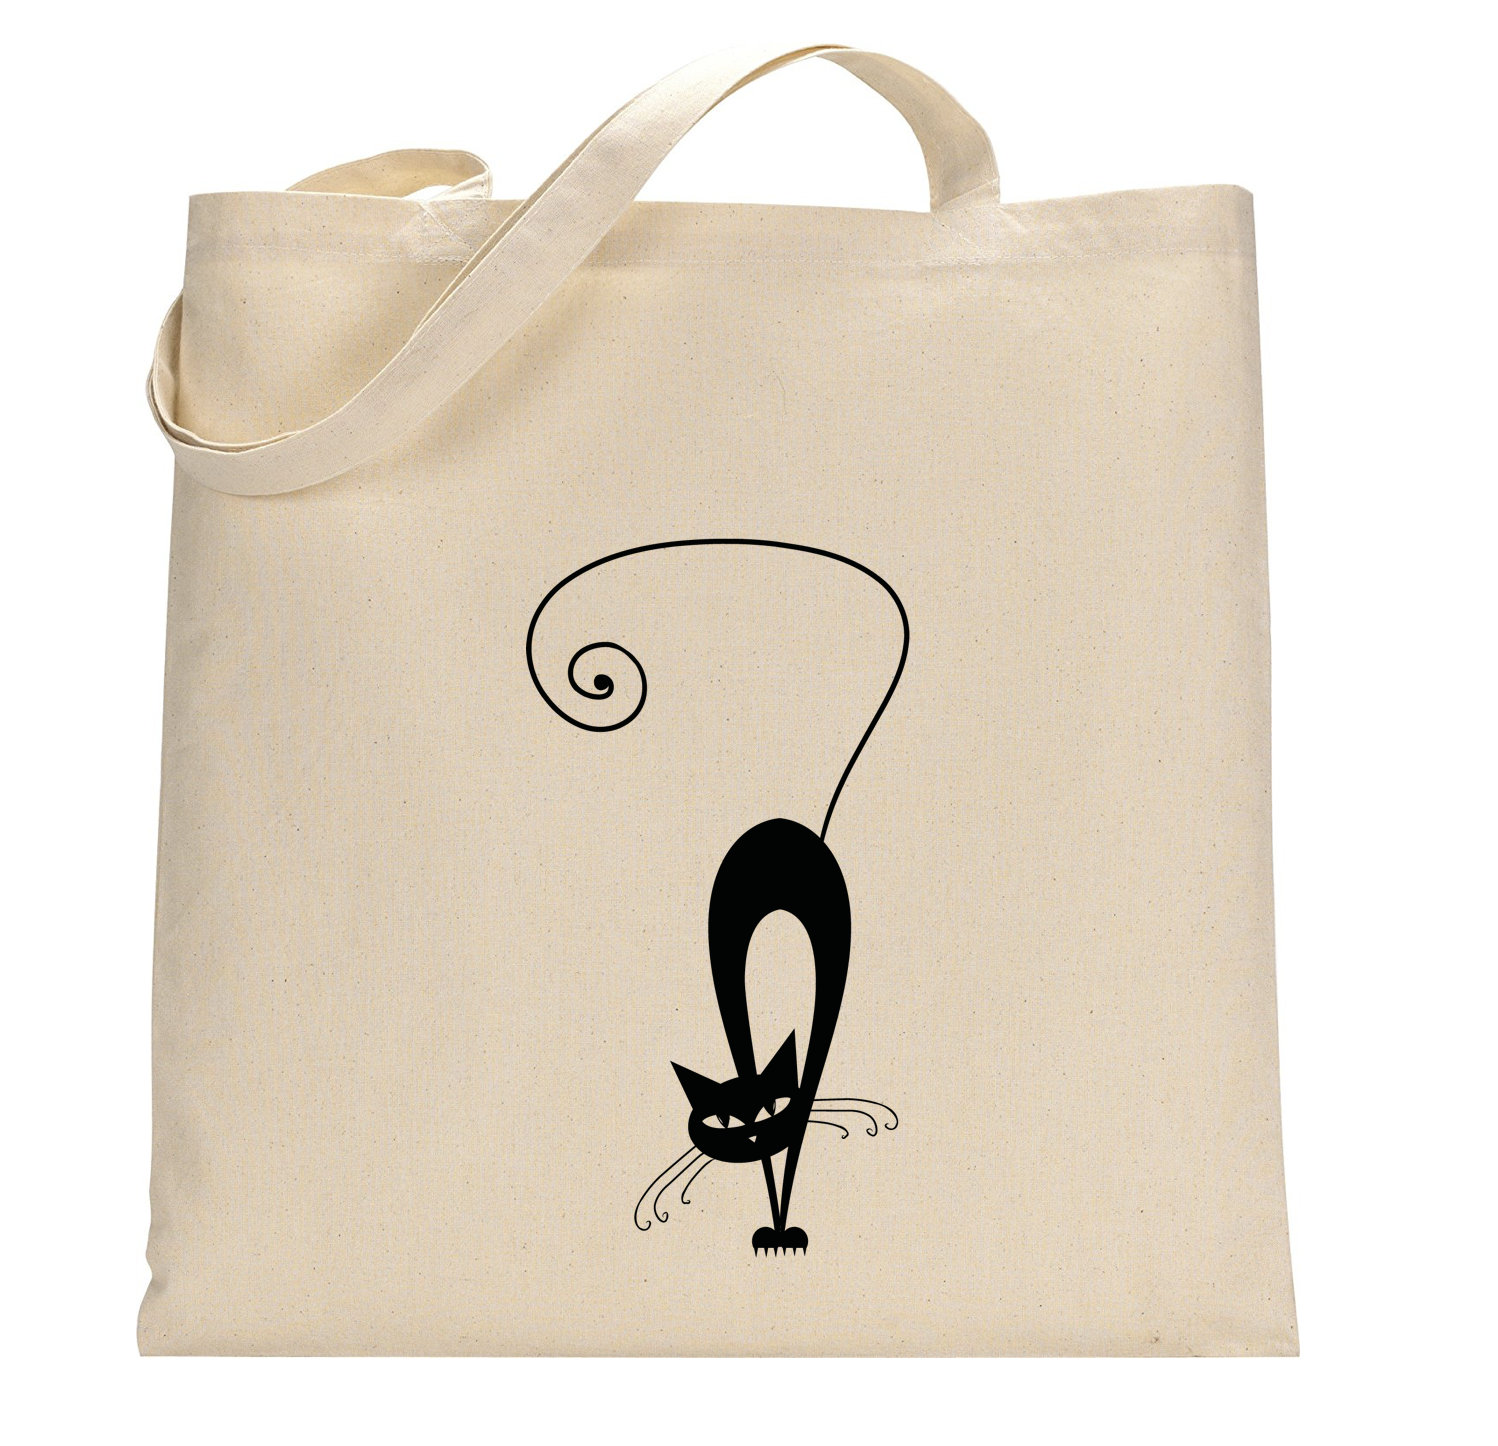 Tote Bags with Your Picture Logo or Message Print